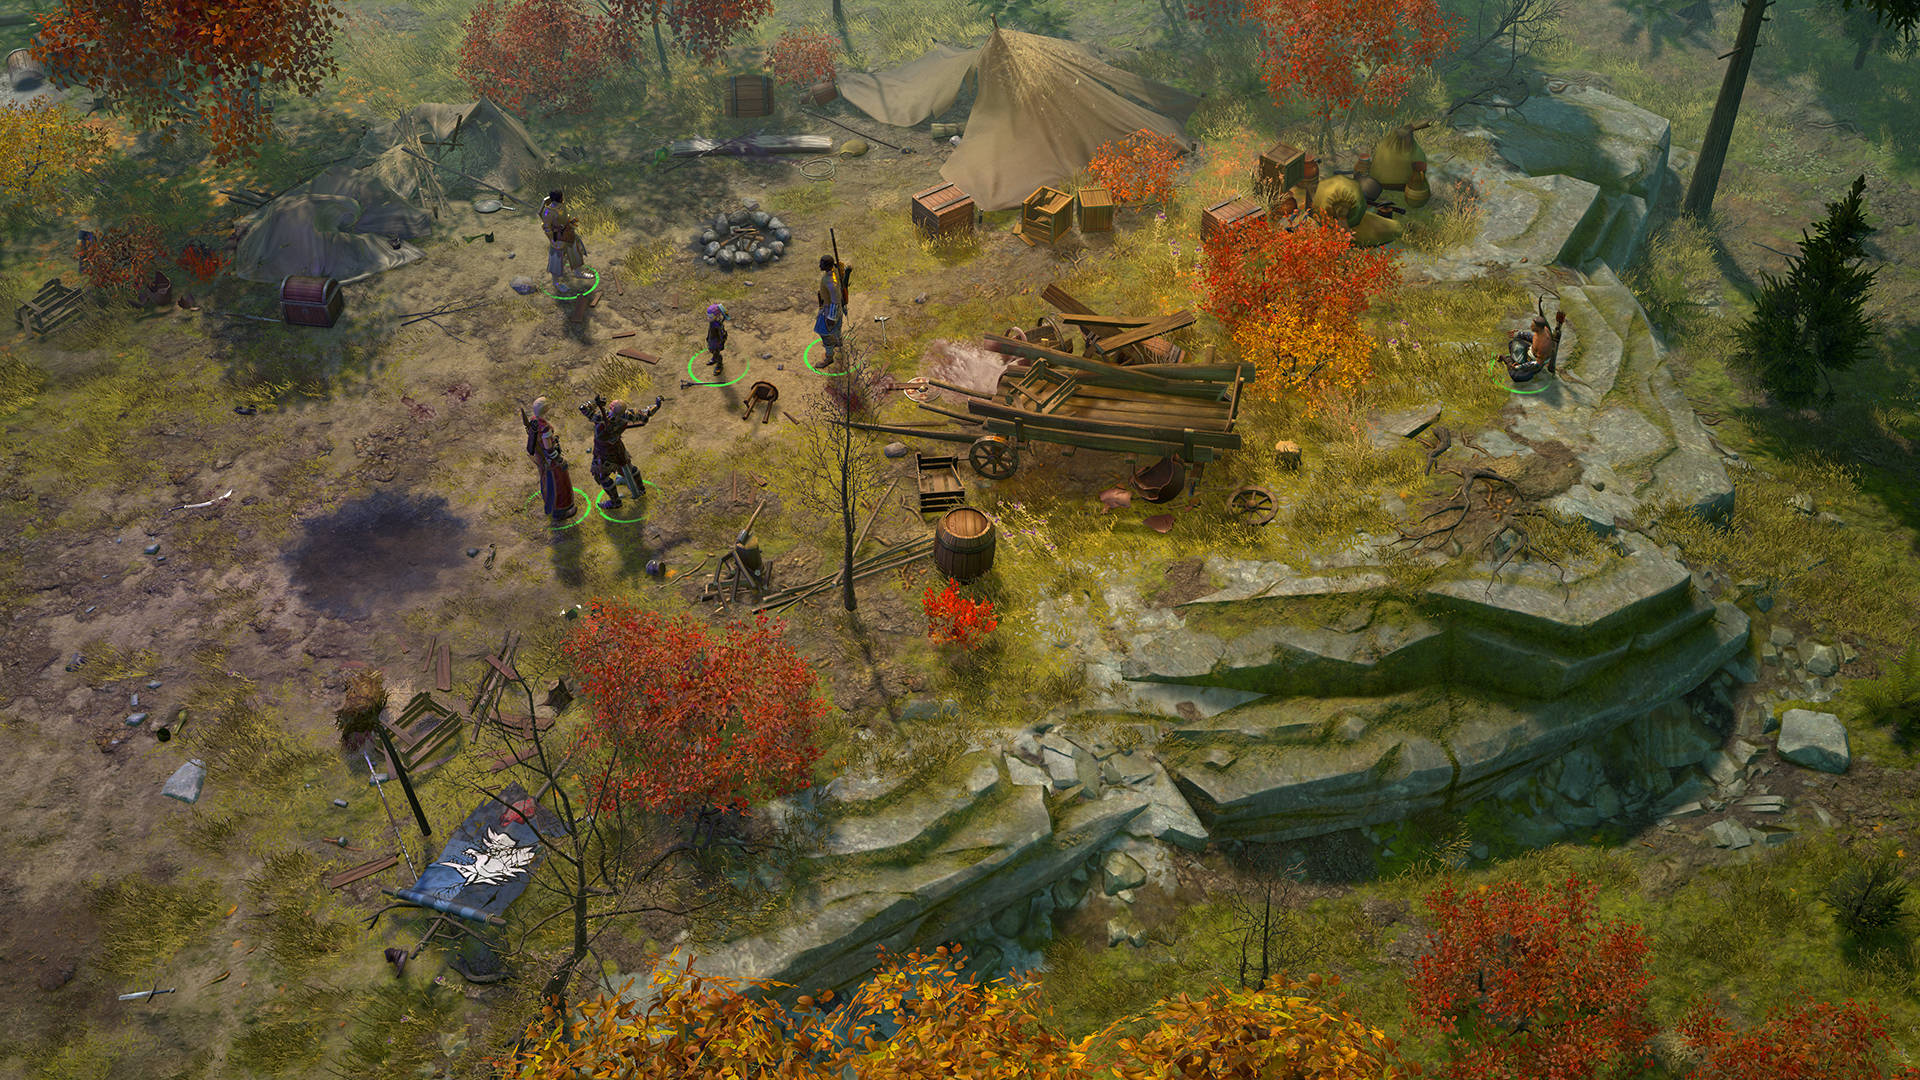 Pathfinder: Wrath of the Righteous Beta Available - RPGamer